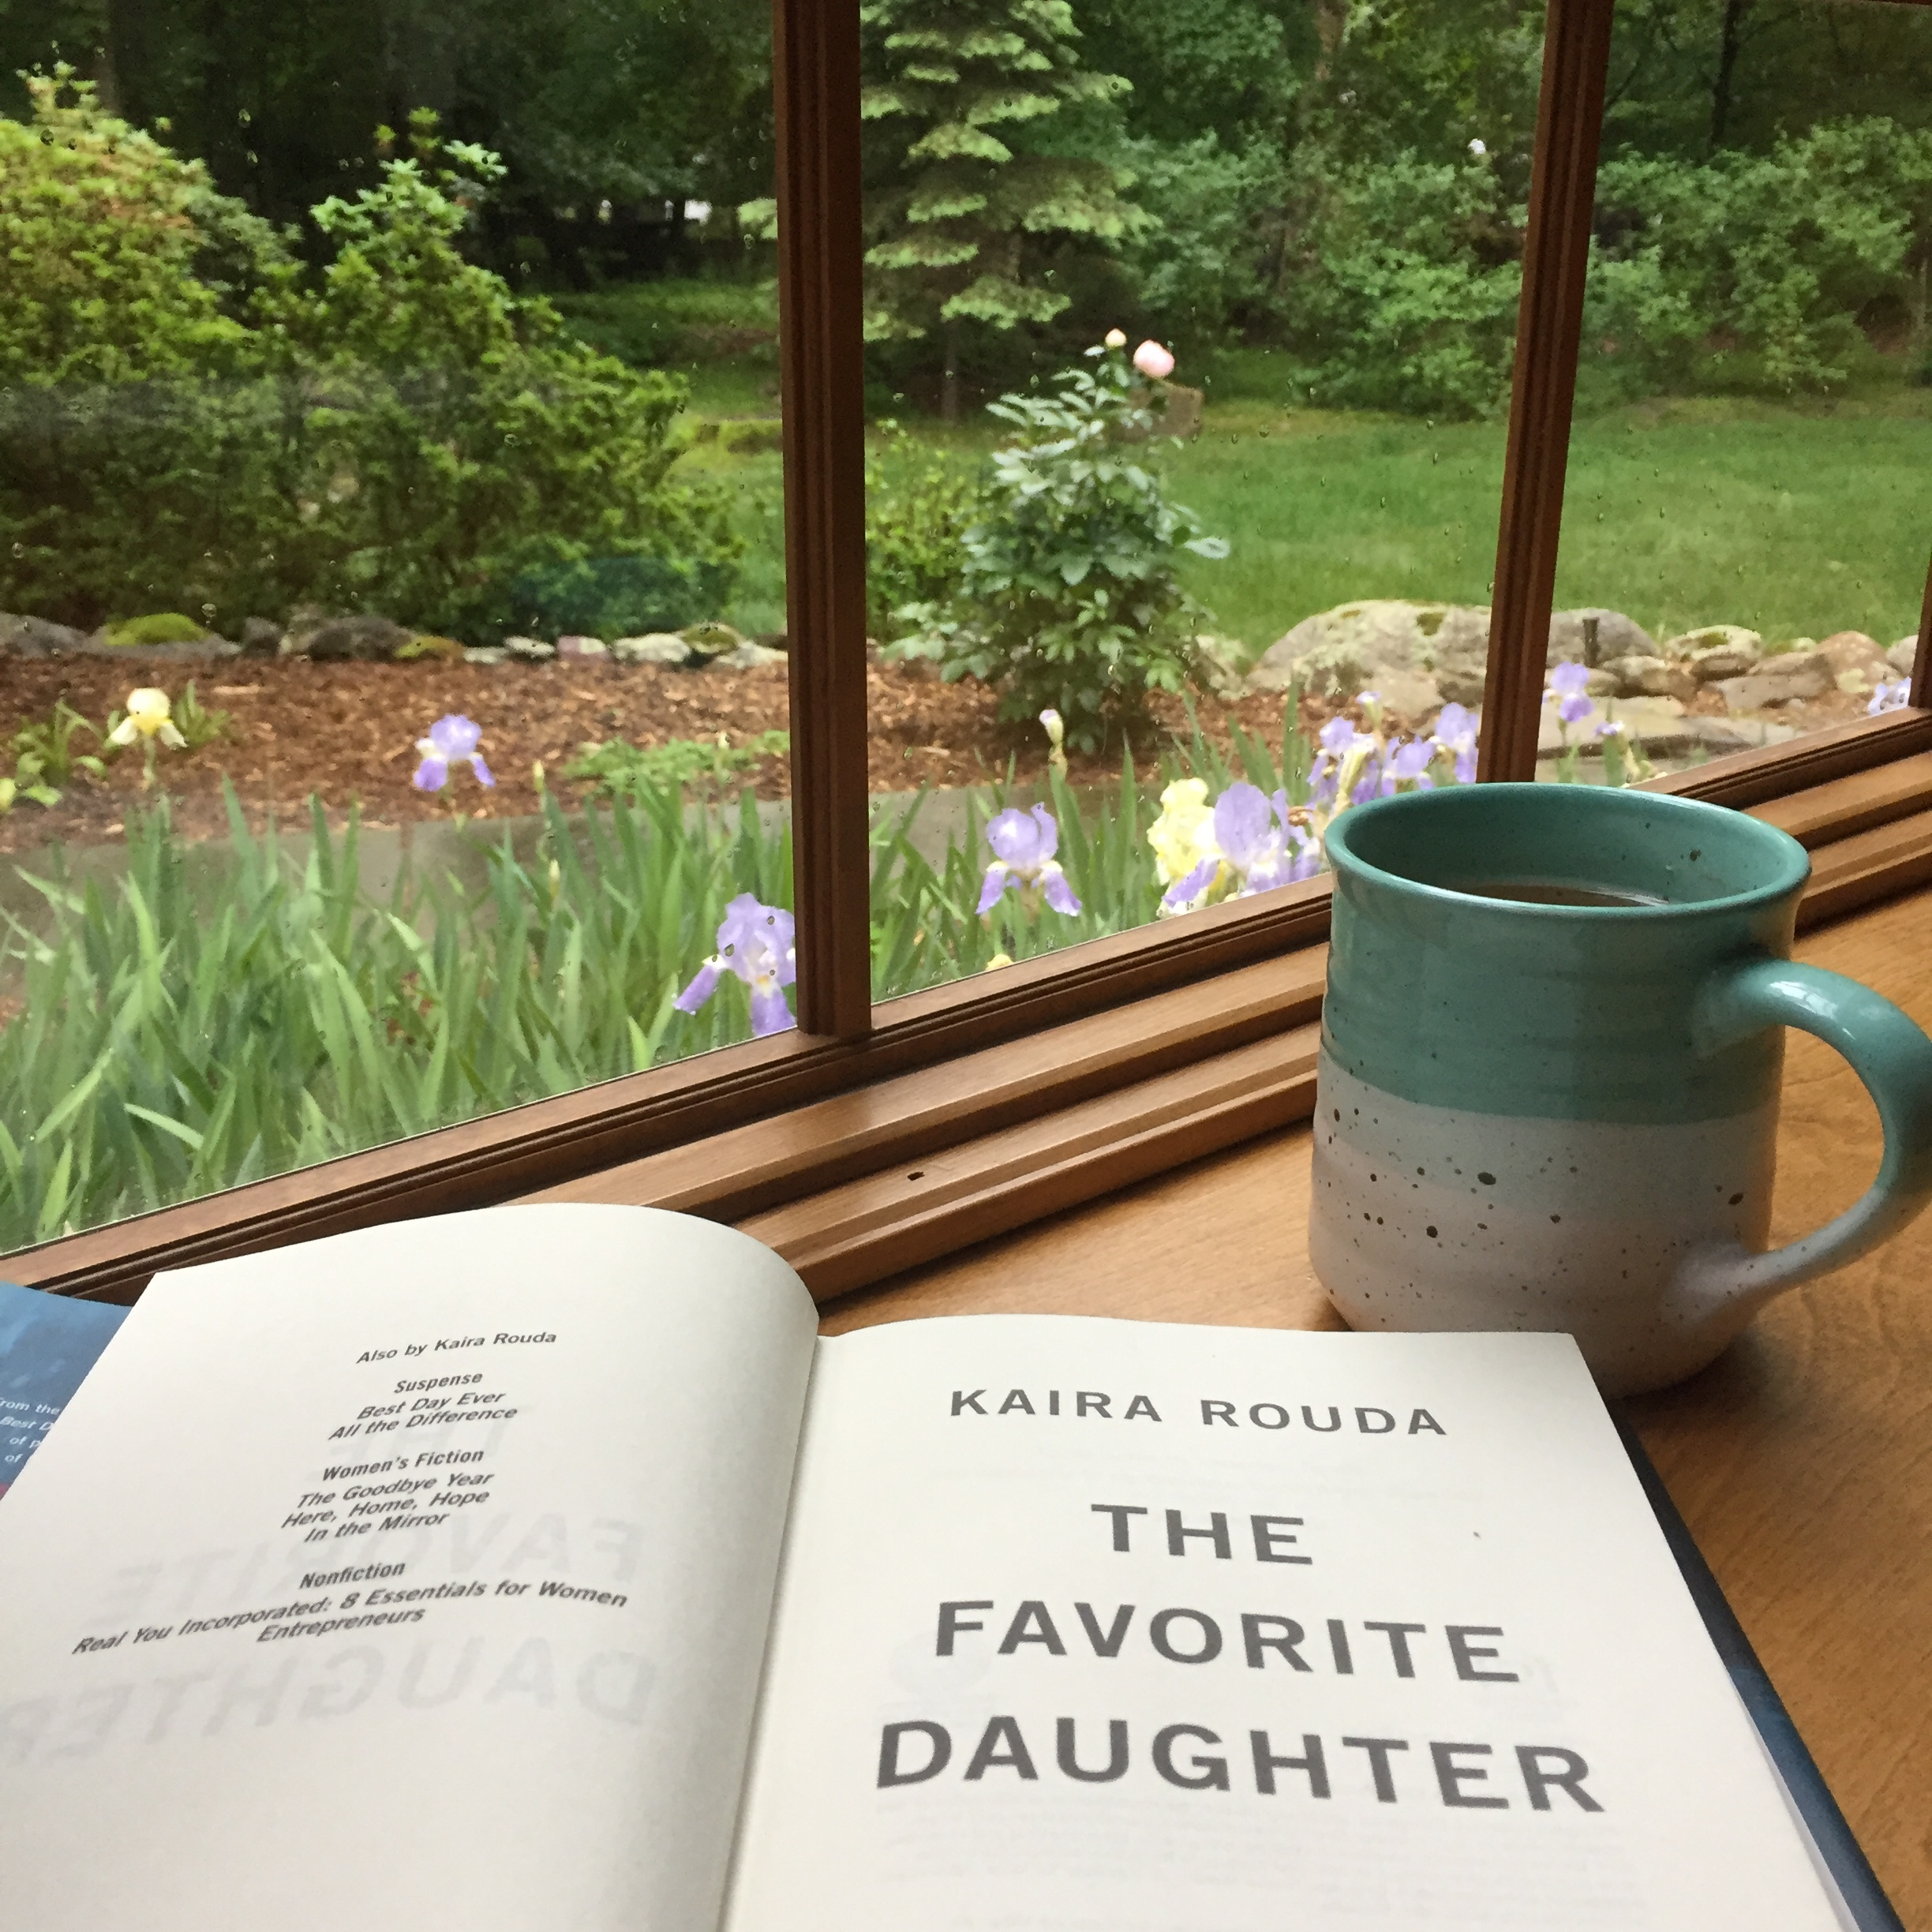 Book Review for THE FAVORITE DAUGHTER by Kaira Rouda